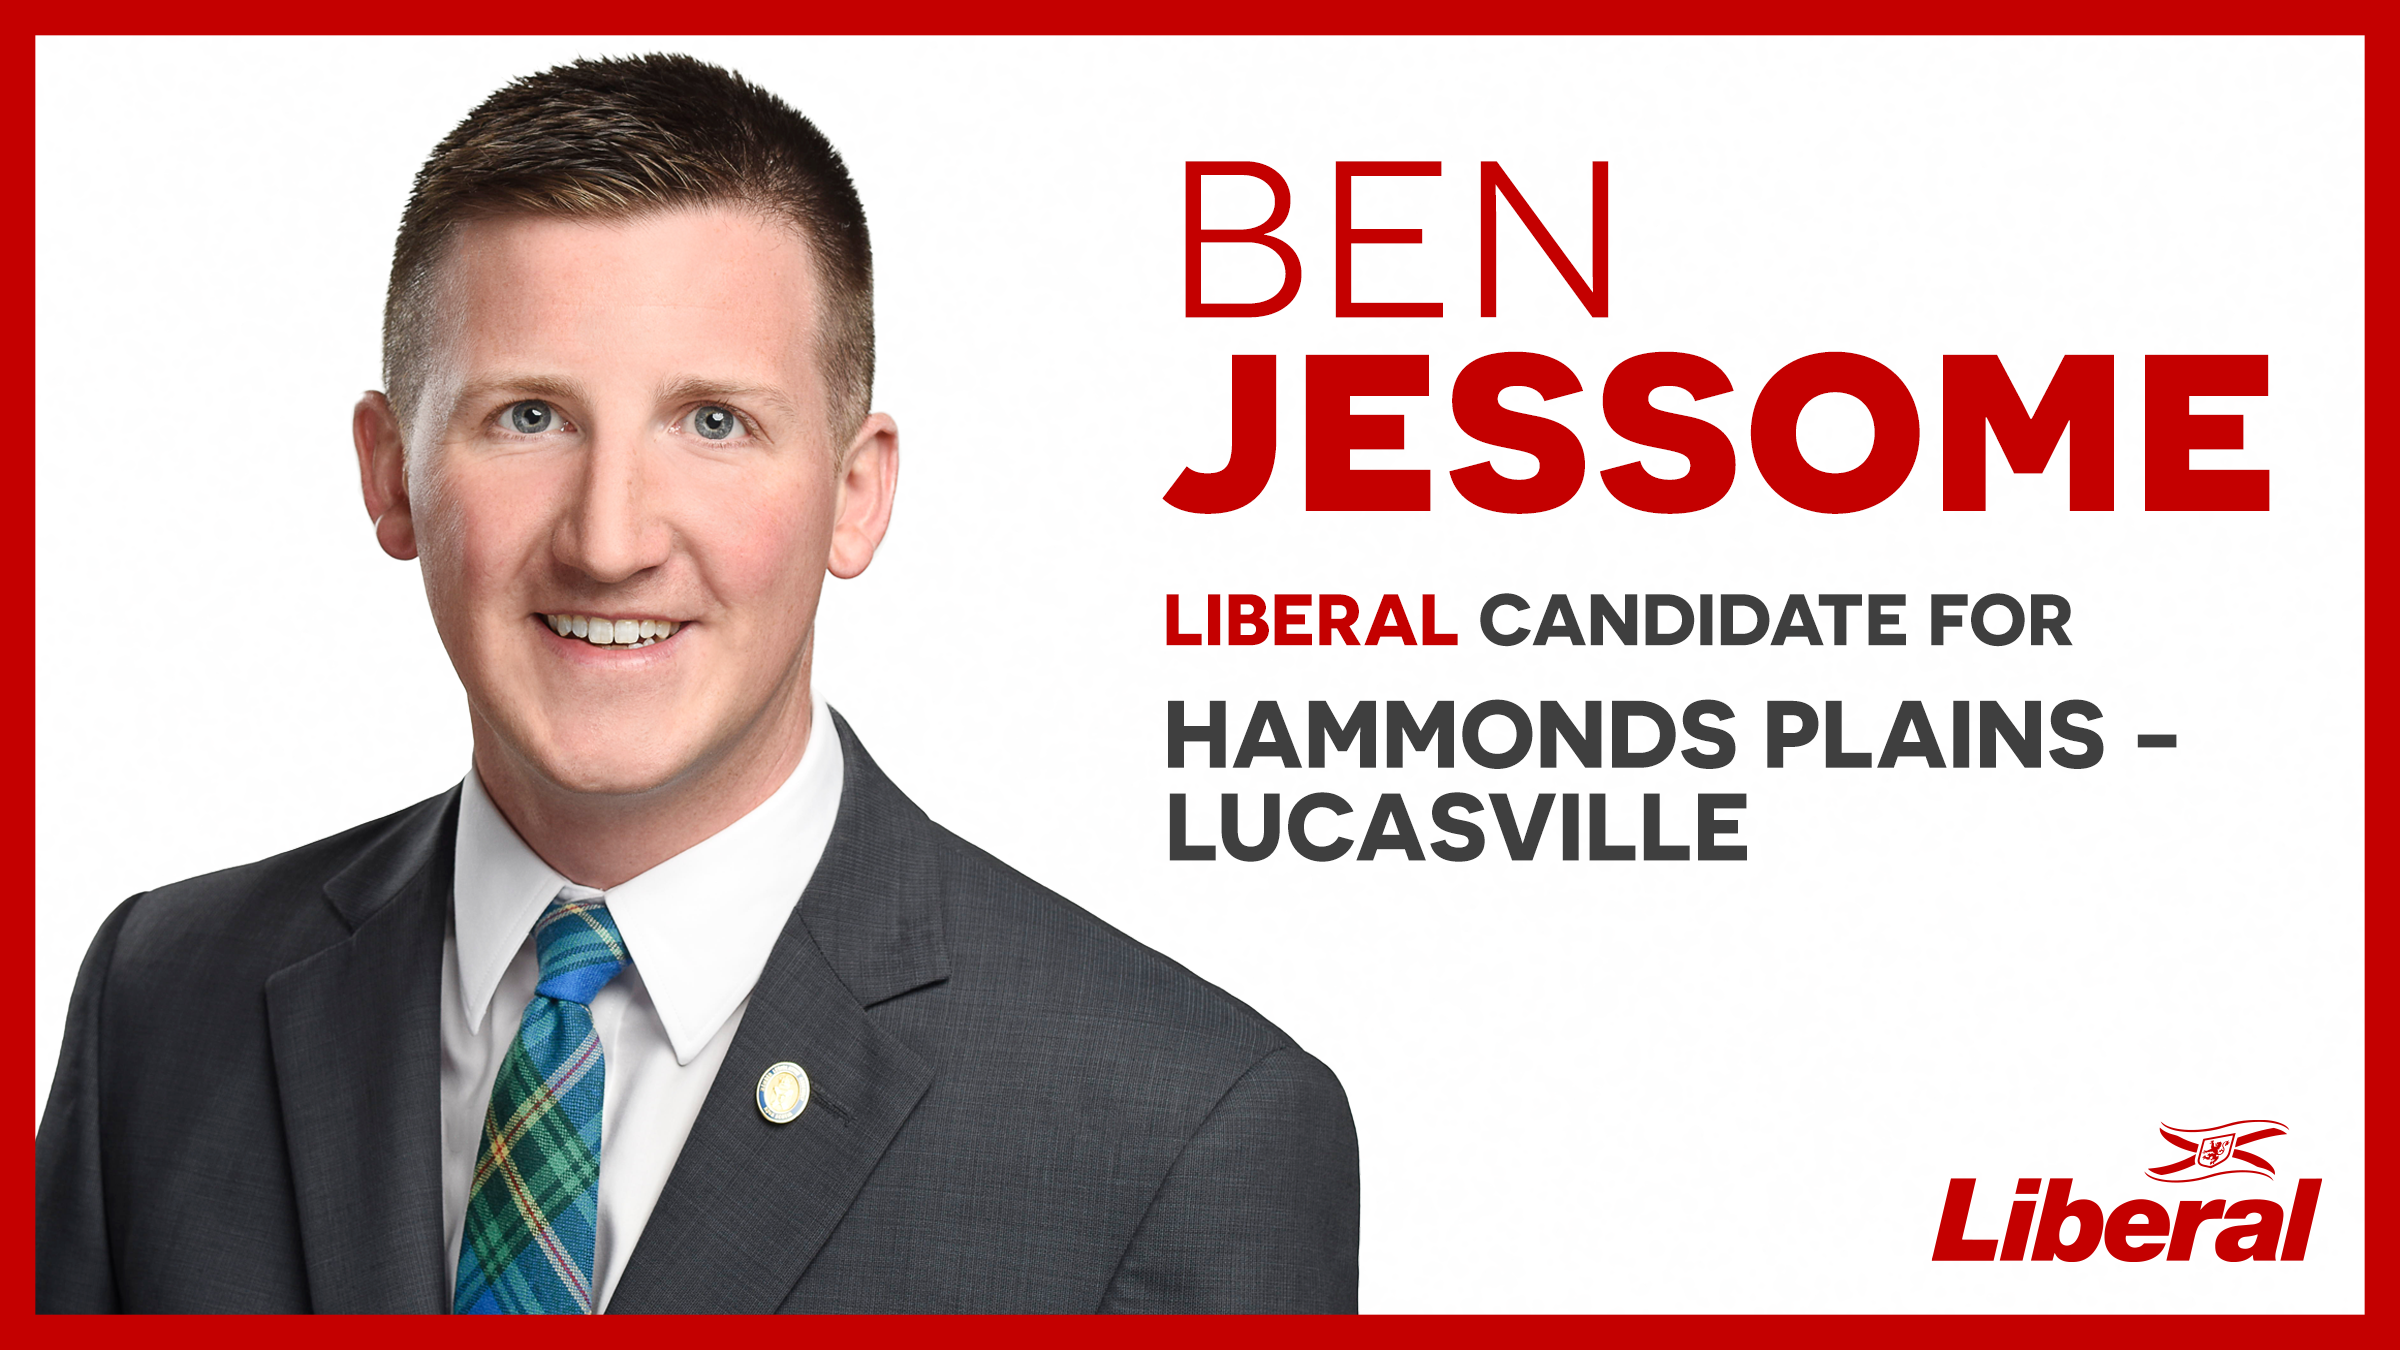 Ben Jessome, Liberal Candidate for Hammonds Plains-Lucasville